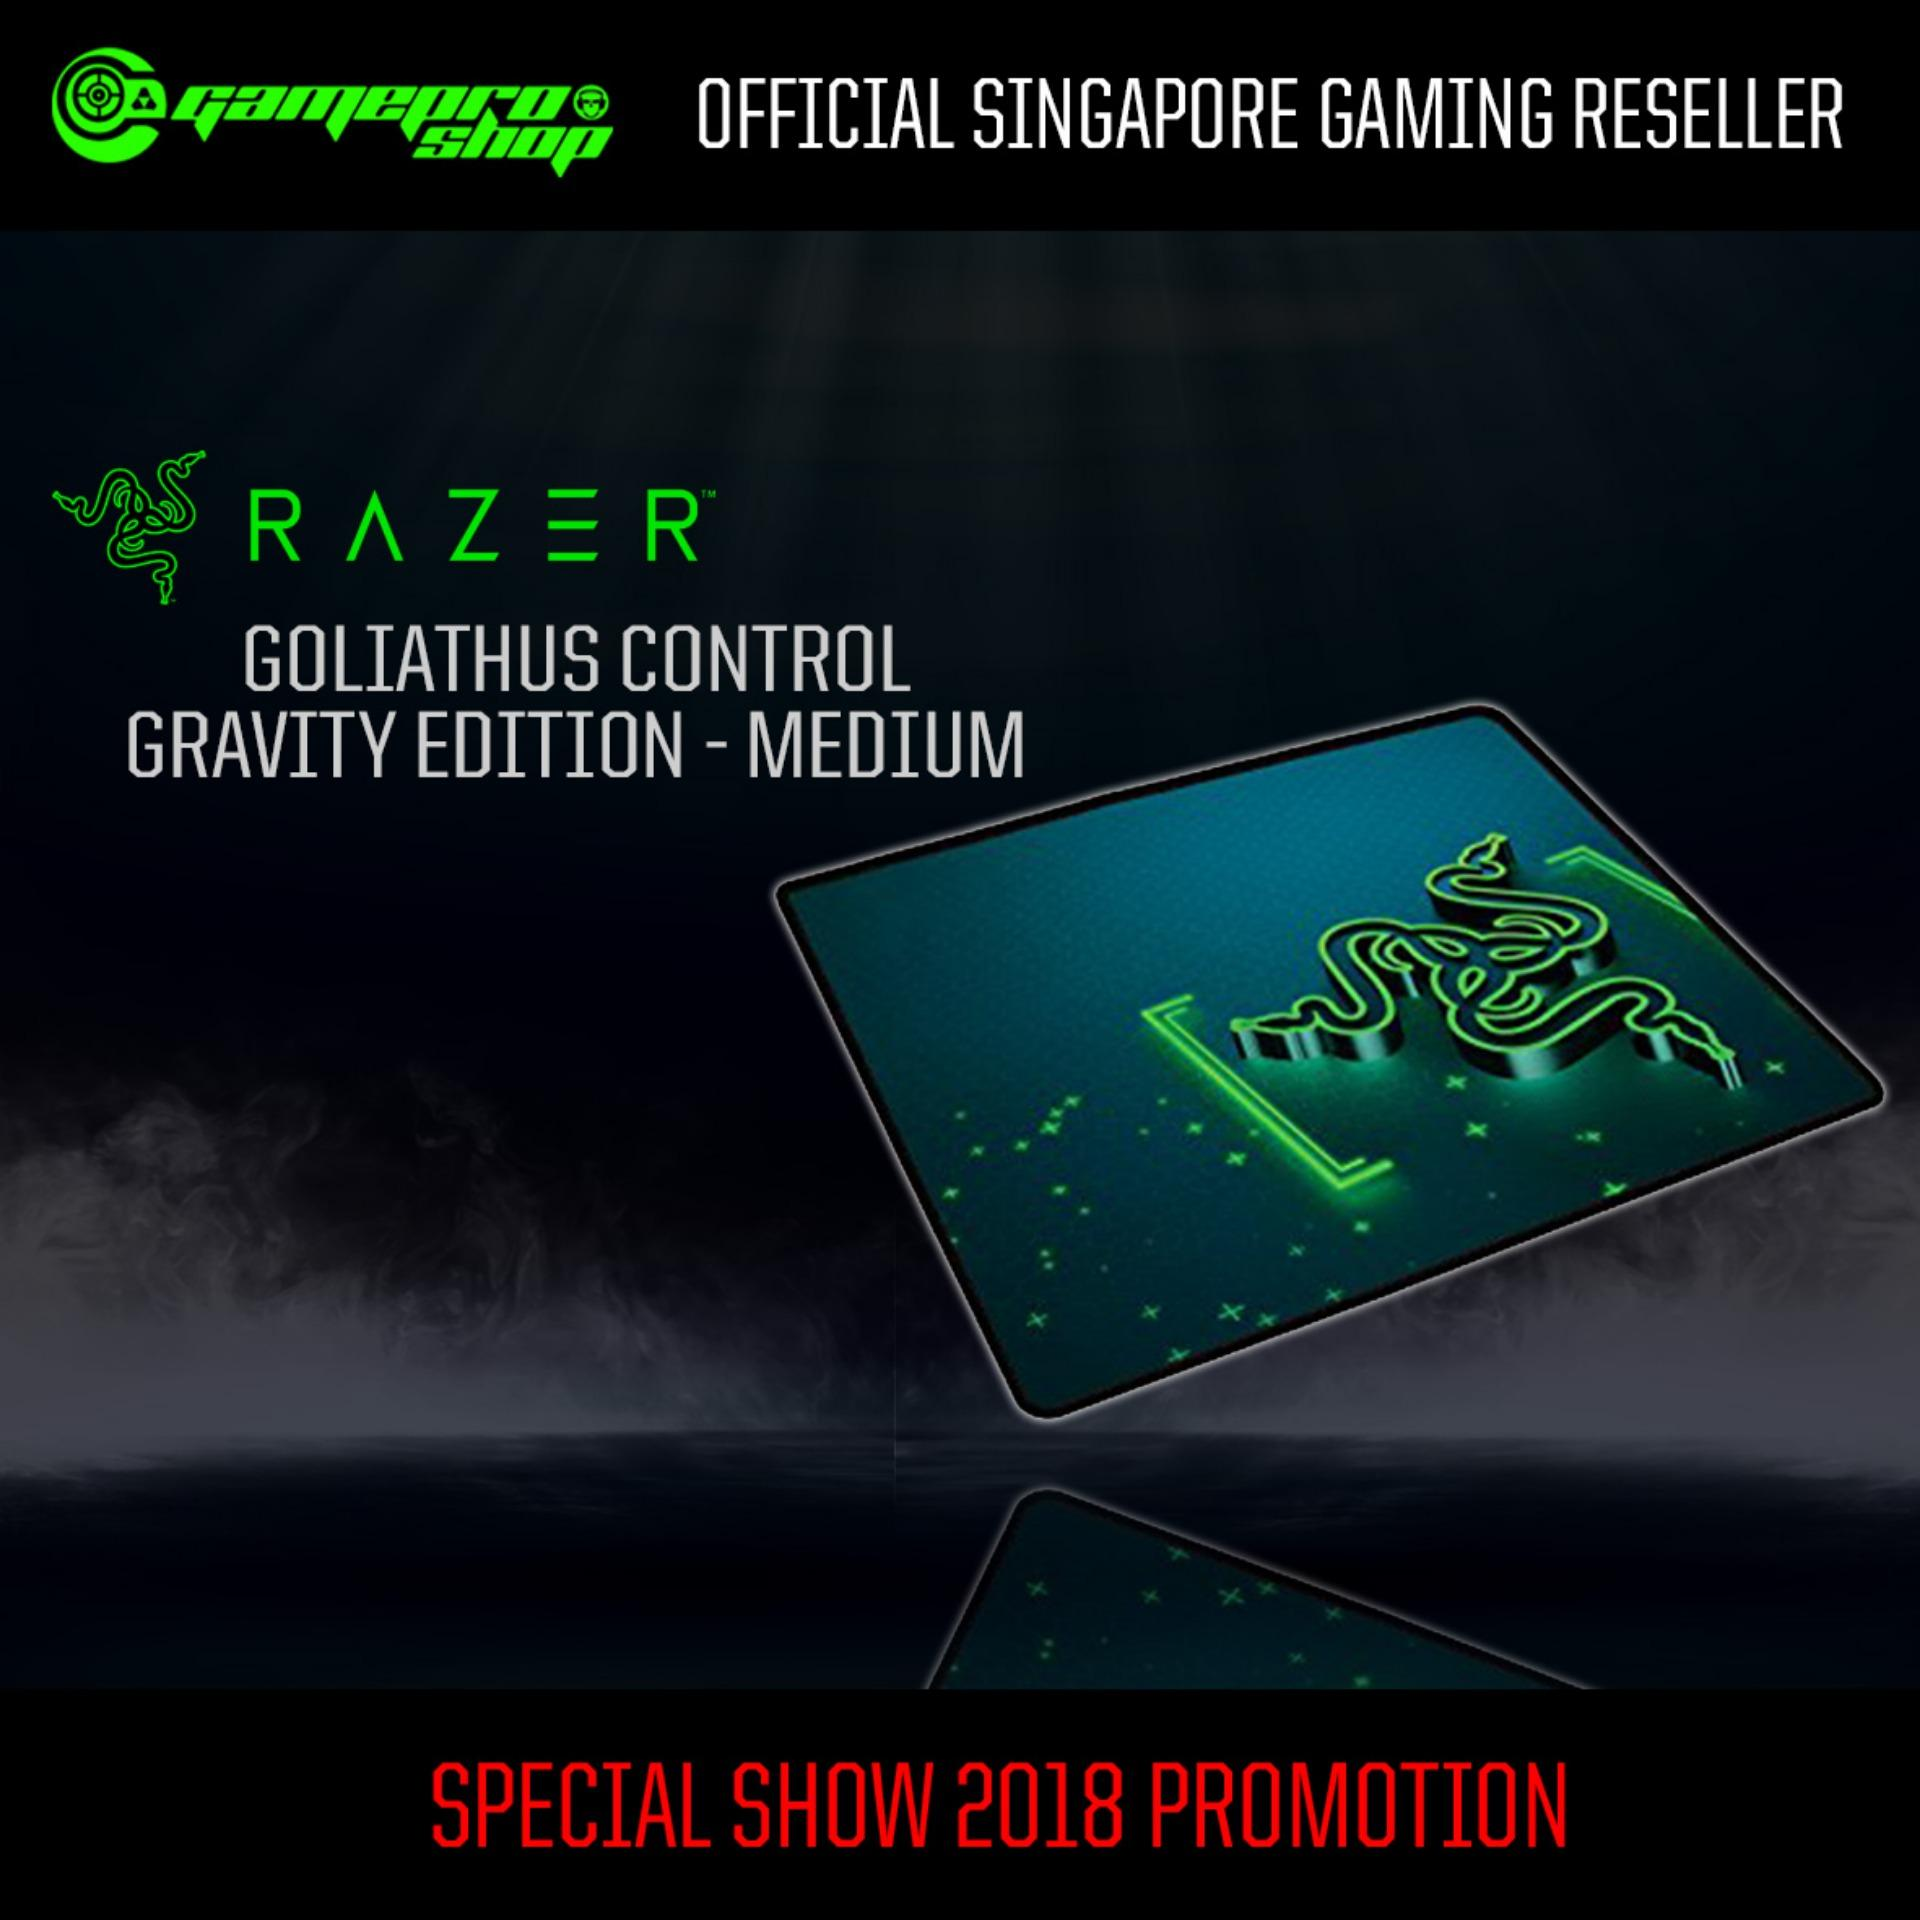 Best Reviews Of Razer Goliathus Control Gravity Edition Medium Gss Promo